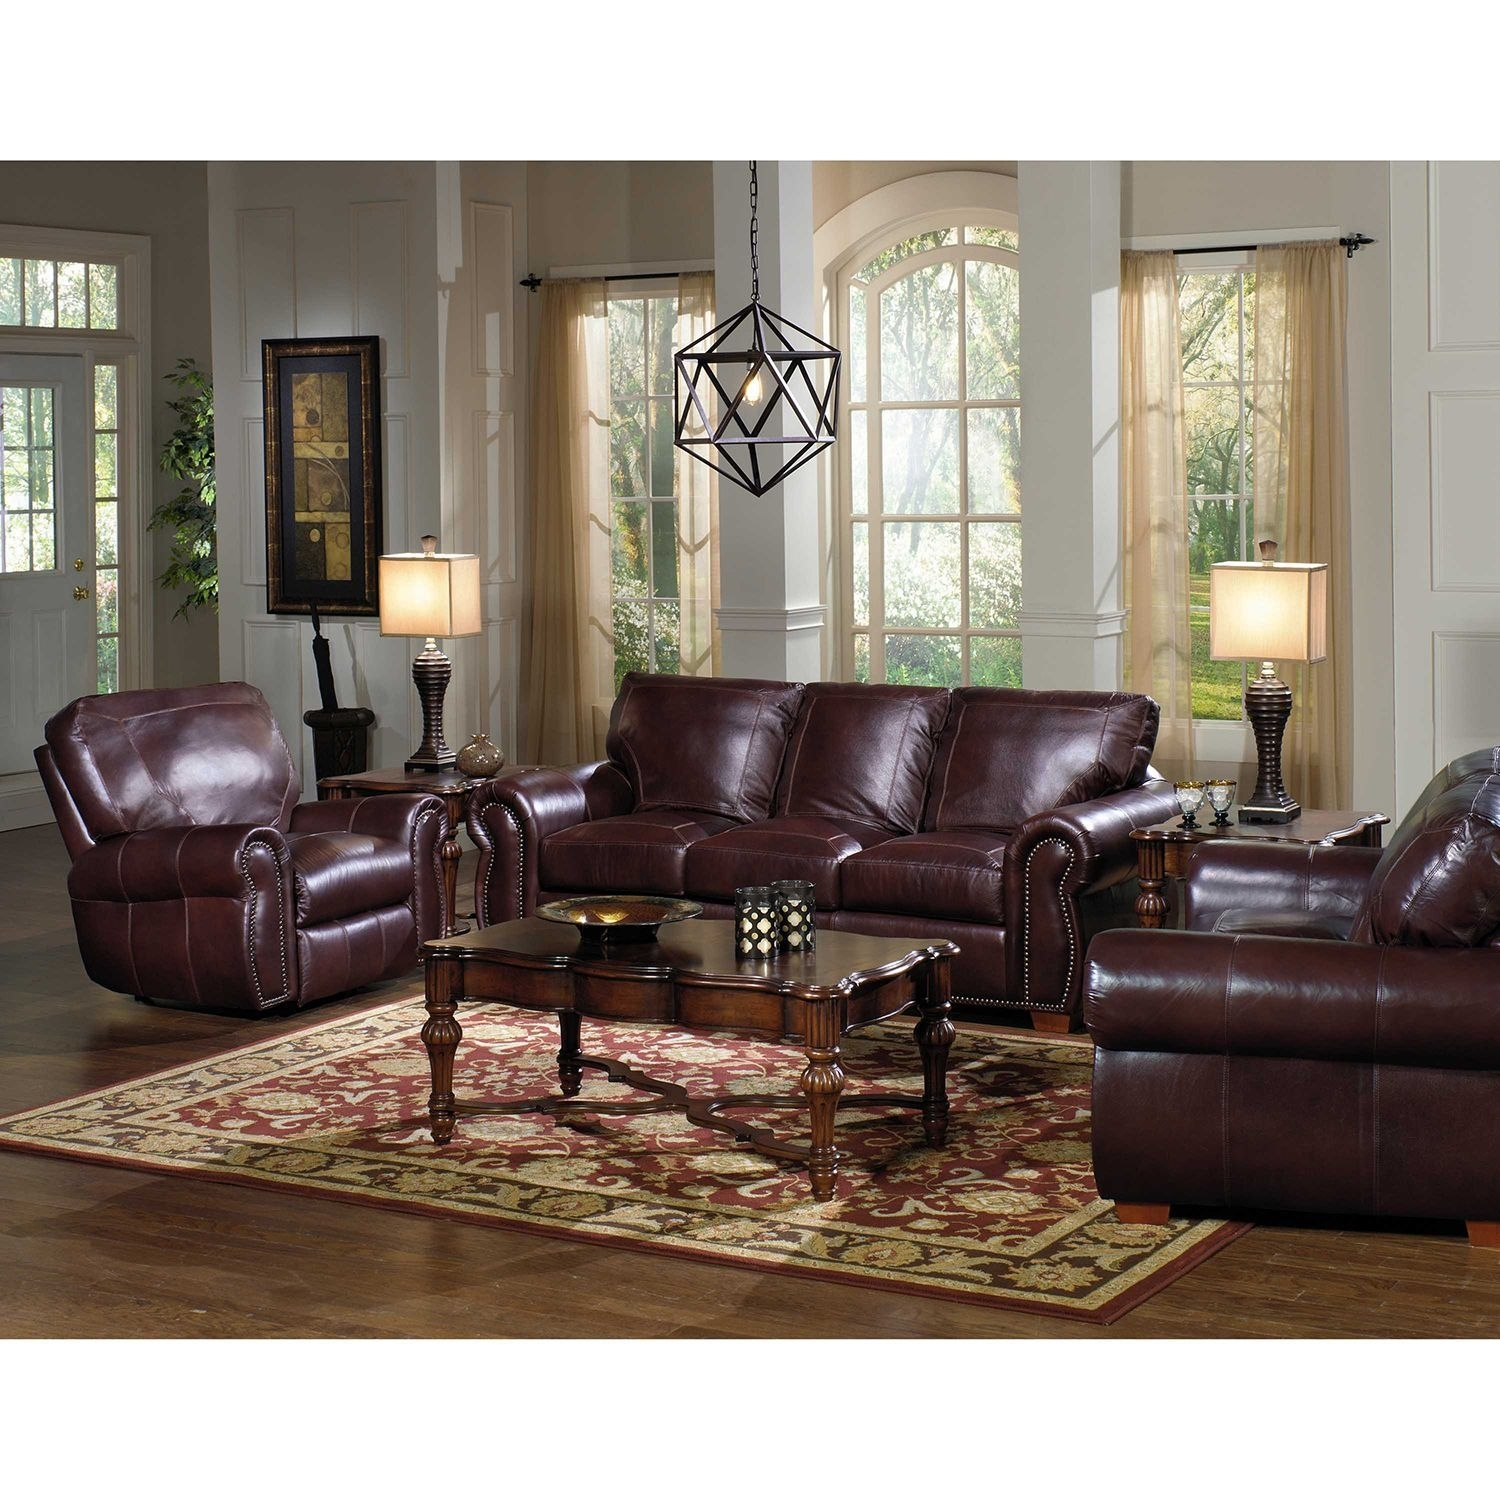 Kingston Top Grain Leather Sofa, Loveseat And Recliner Living Room With Regard To Kingston Sectional Sofas (View 7 of 10)